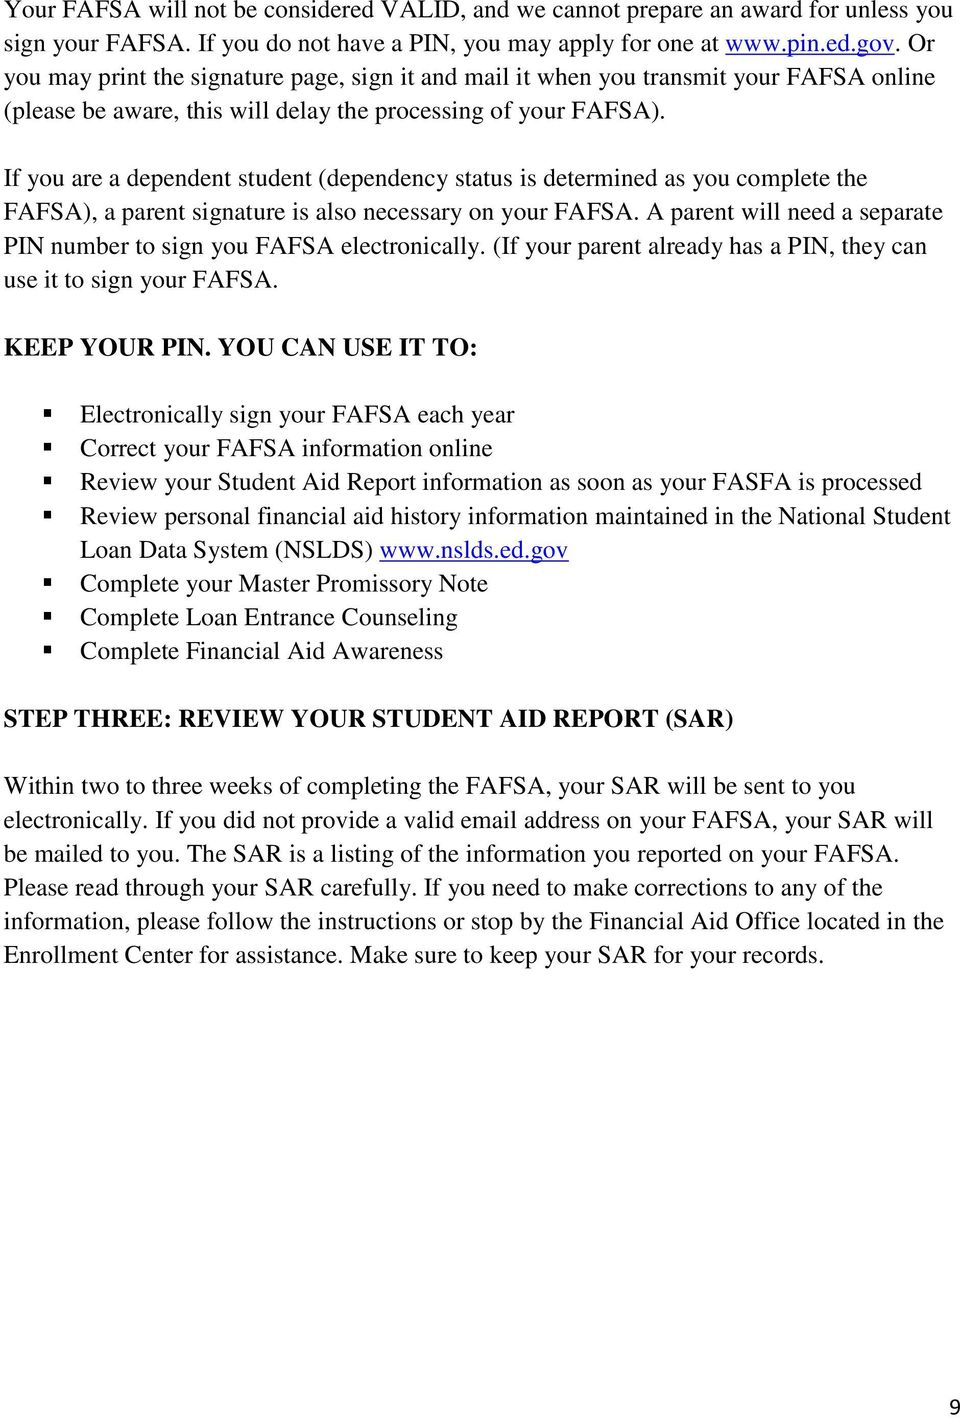 If you are a dependent student (dependency status is determined as you complete the FAFSA), a parent signature is also necessary on your FAFSA.